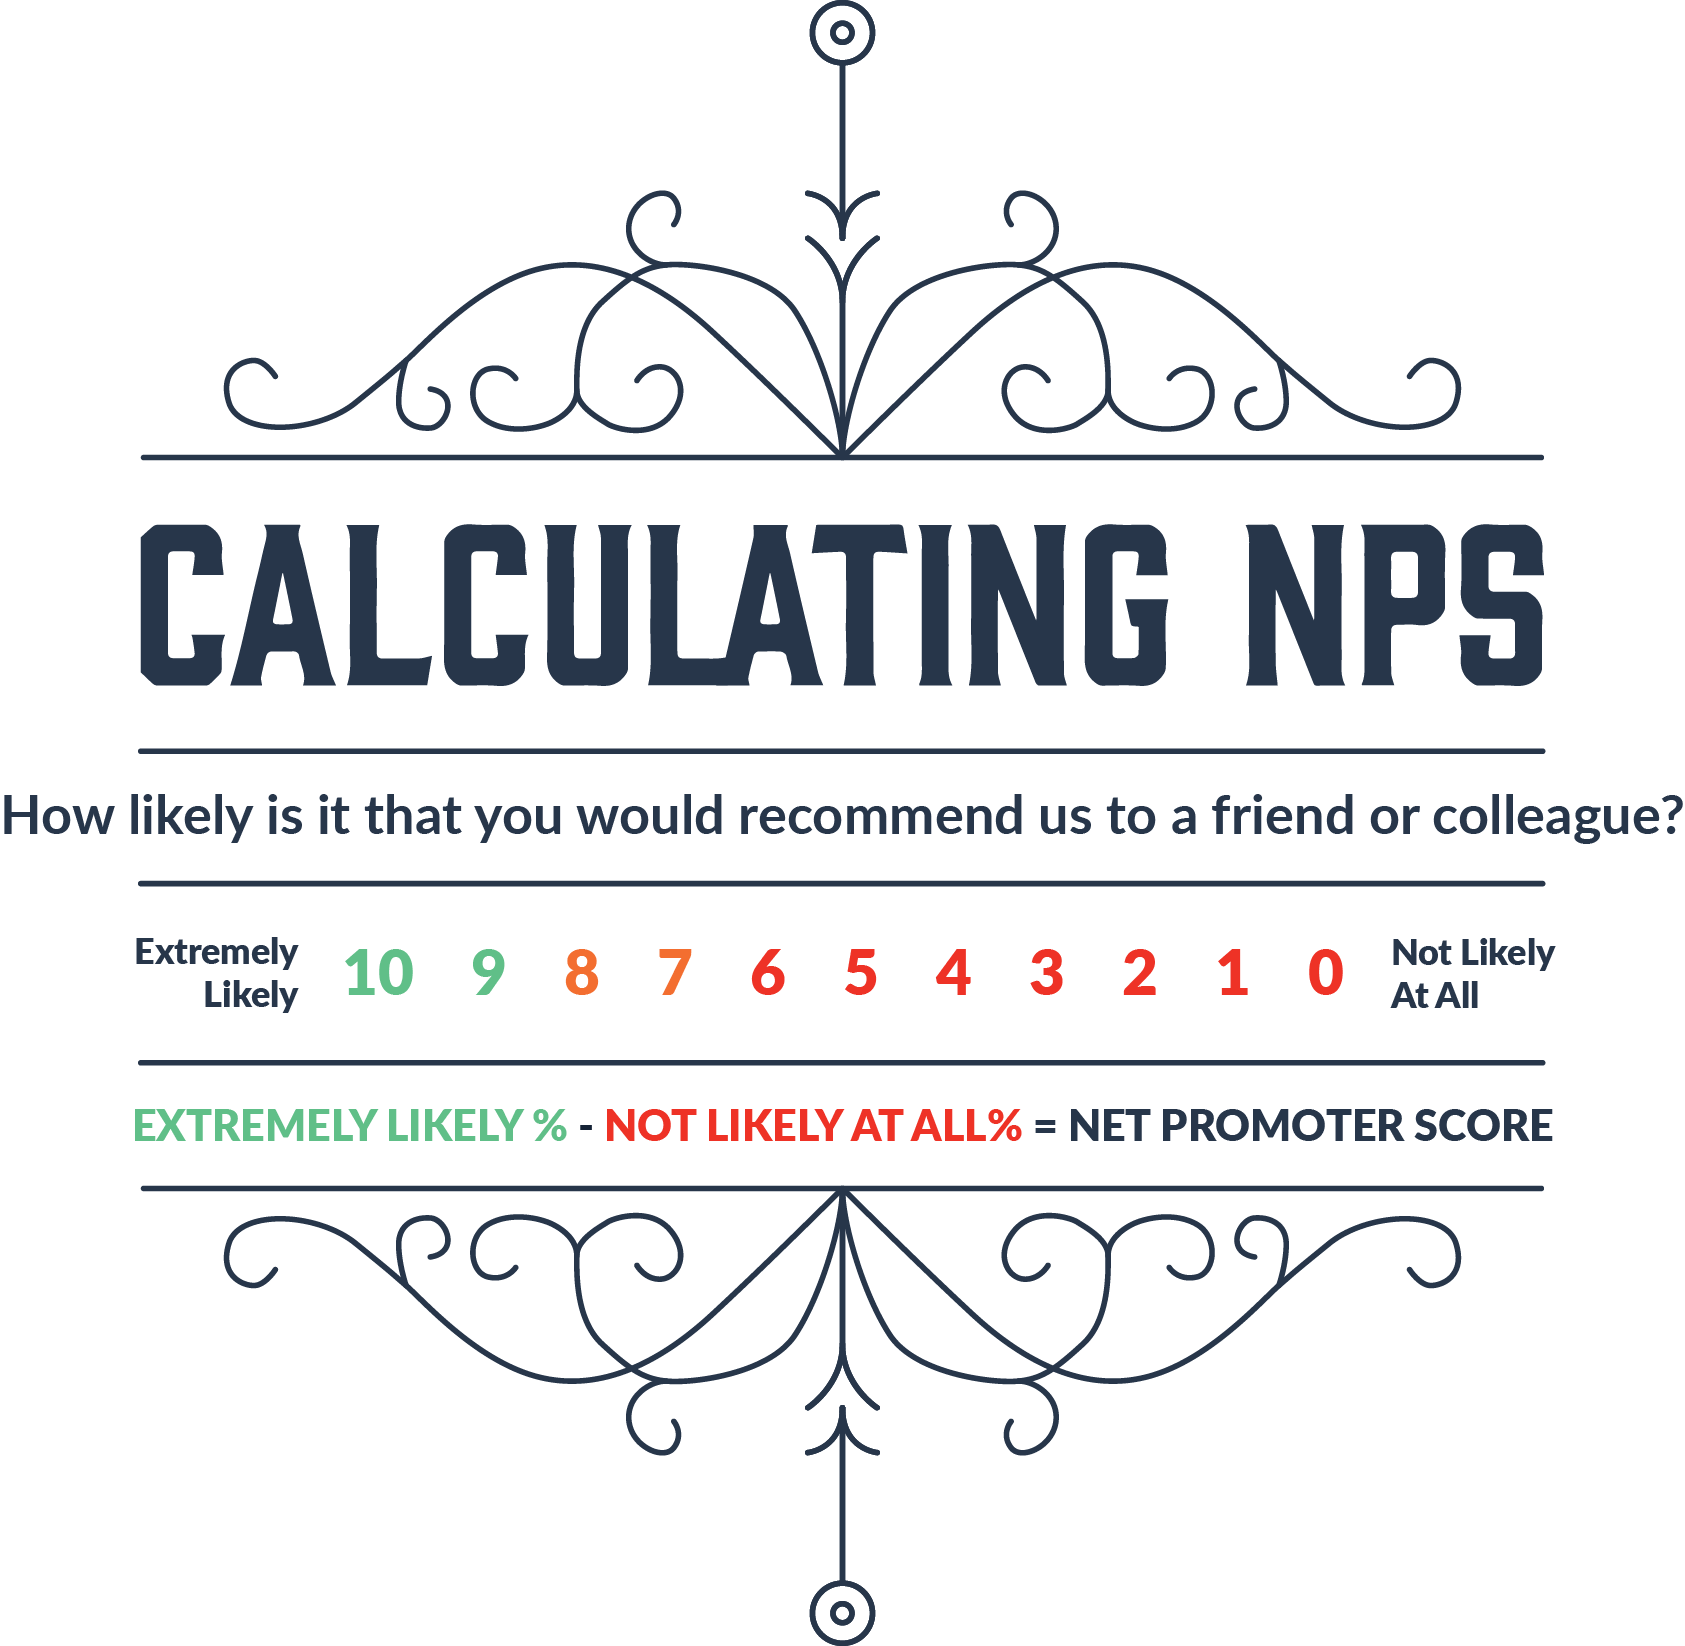 Calculating NPS